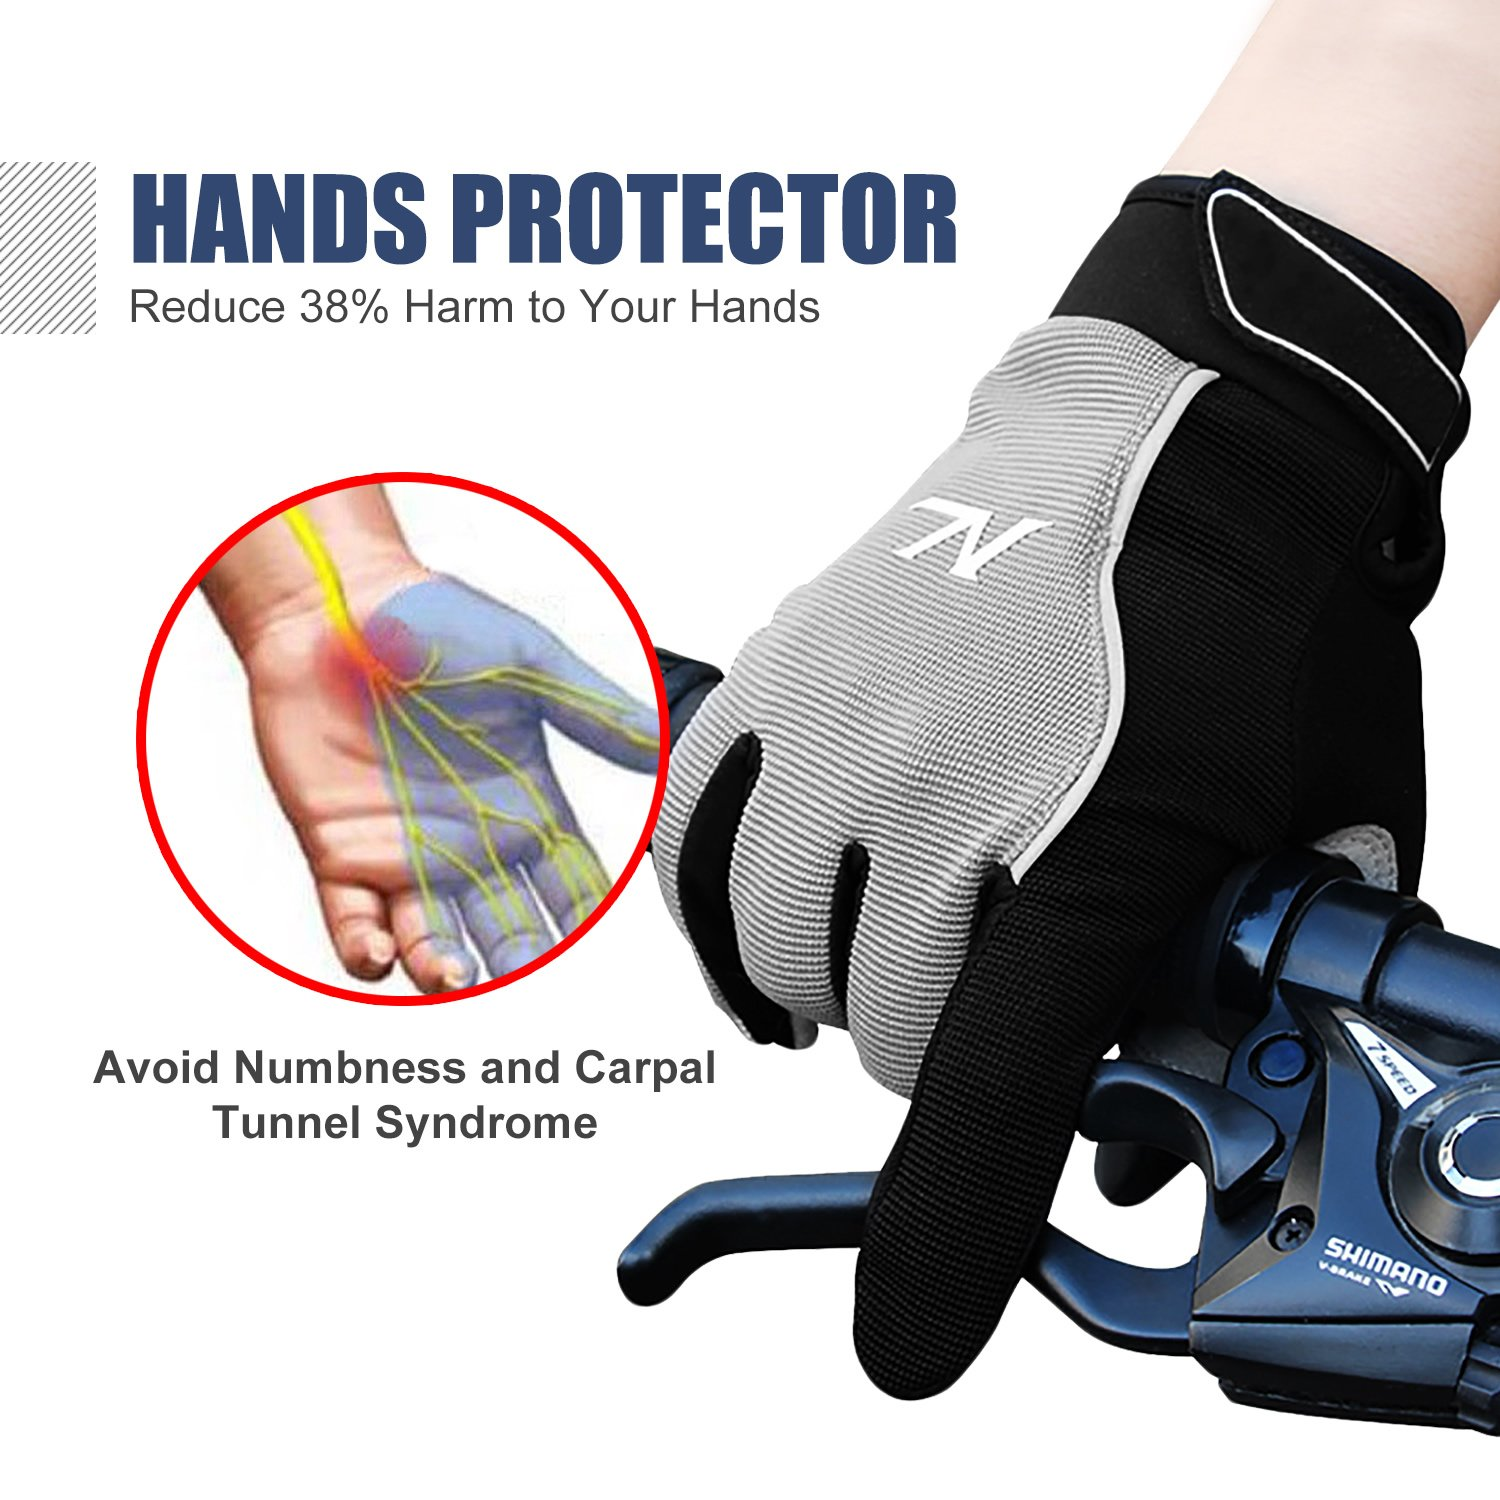 Motorcycle gloves to prevent numbness - Amazon Com Outdoor Sports Bicycle Gloves Full Finger Motorcycle Motorbike Riding Mesh Glove Warm Protection Windproof Racing Fashion Anti Slip Breathable